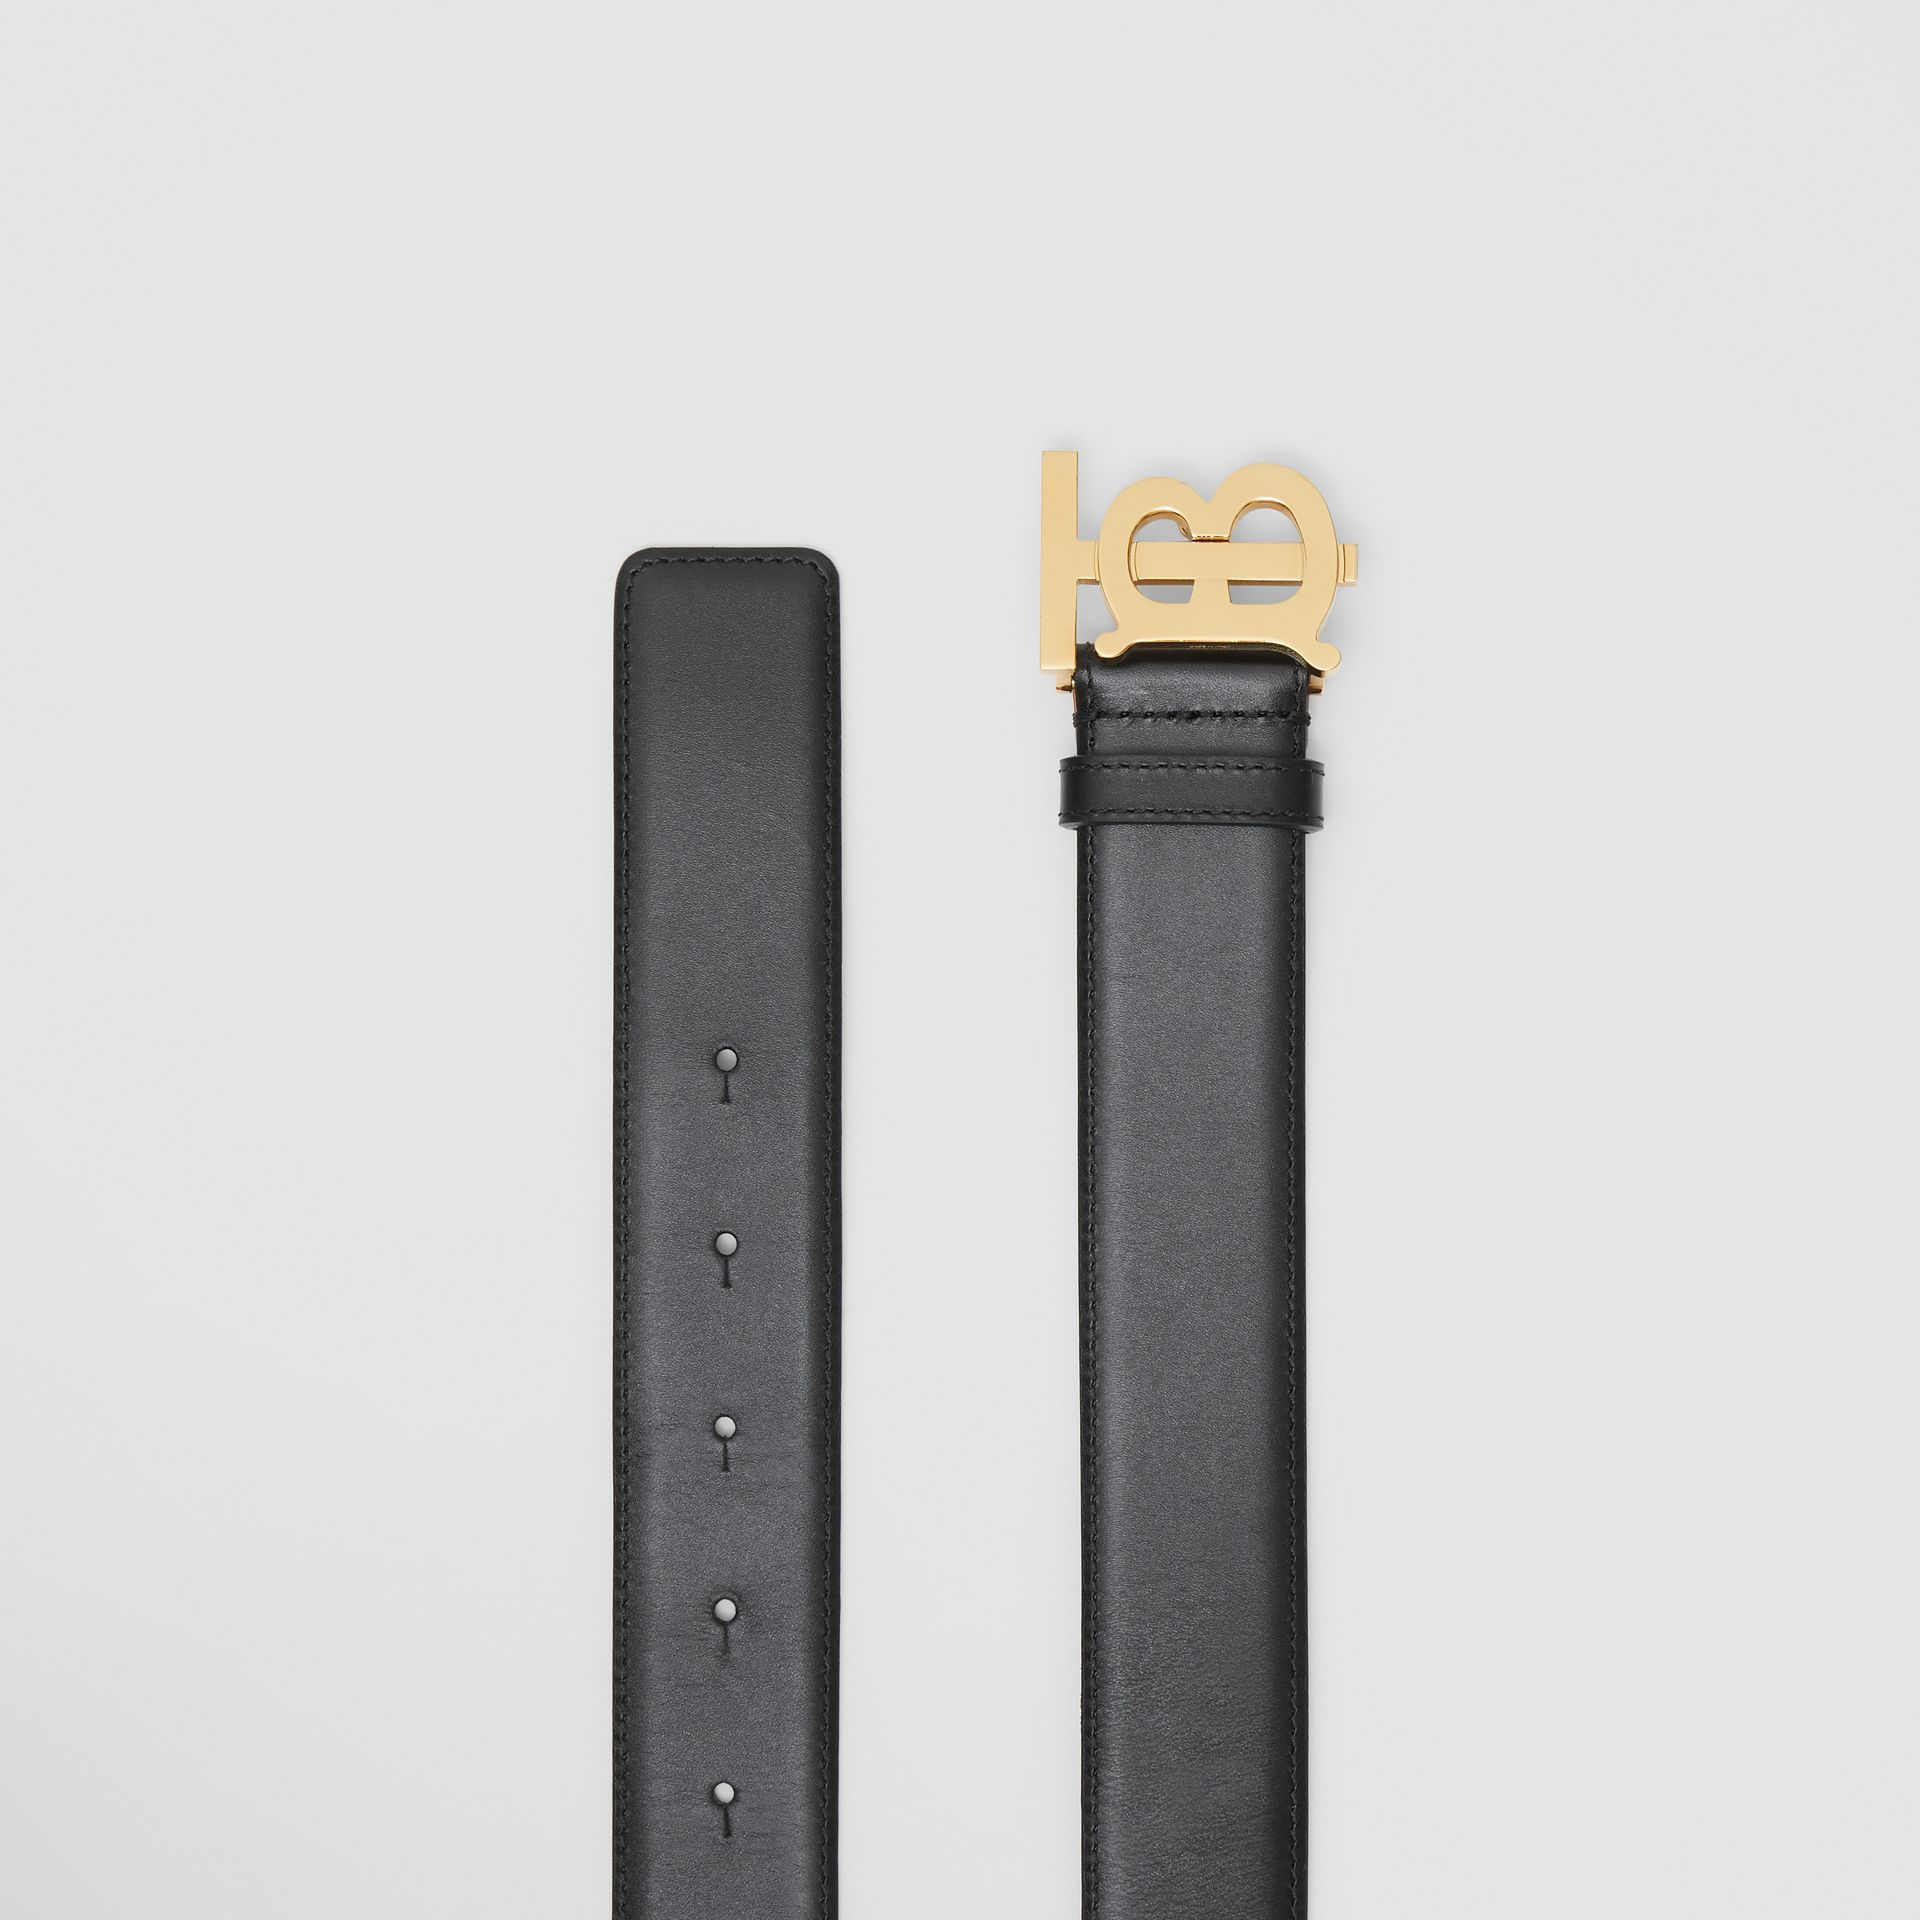 Monogram Motif Leather Belt in Black - Women | Burberry United Kingdom - gallery image 5